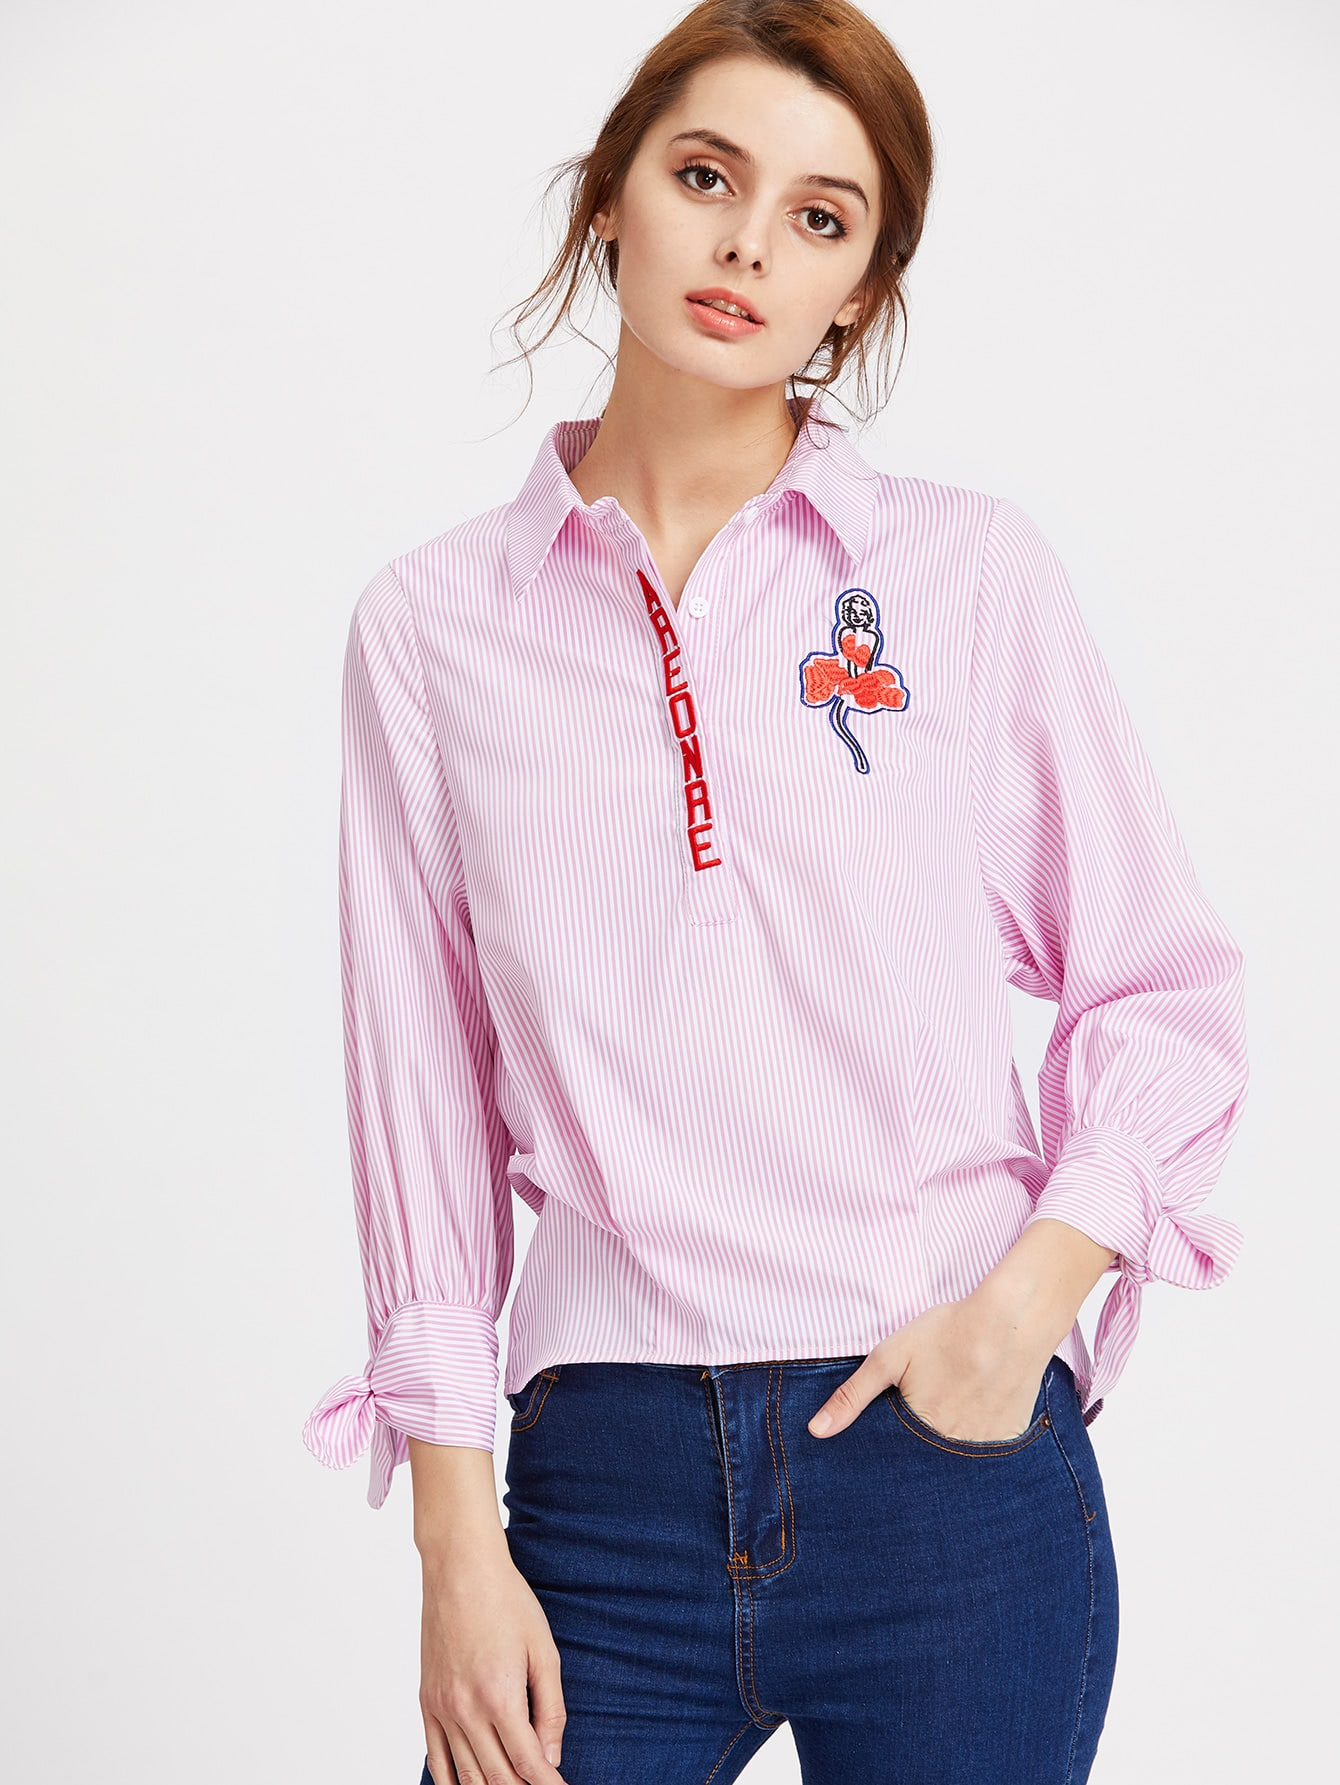 Vertical Striped Embroidered Half Placket Tie Cuff Blouse blouse170410409